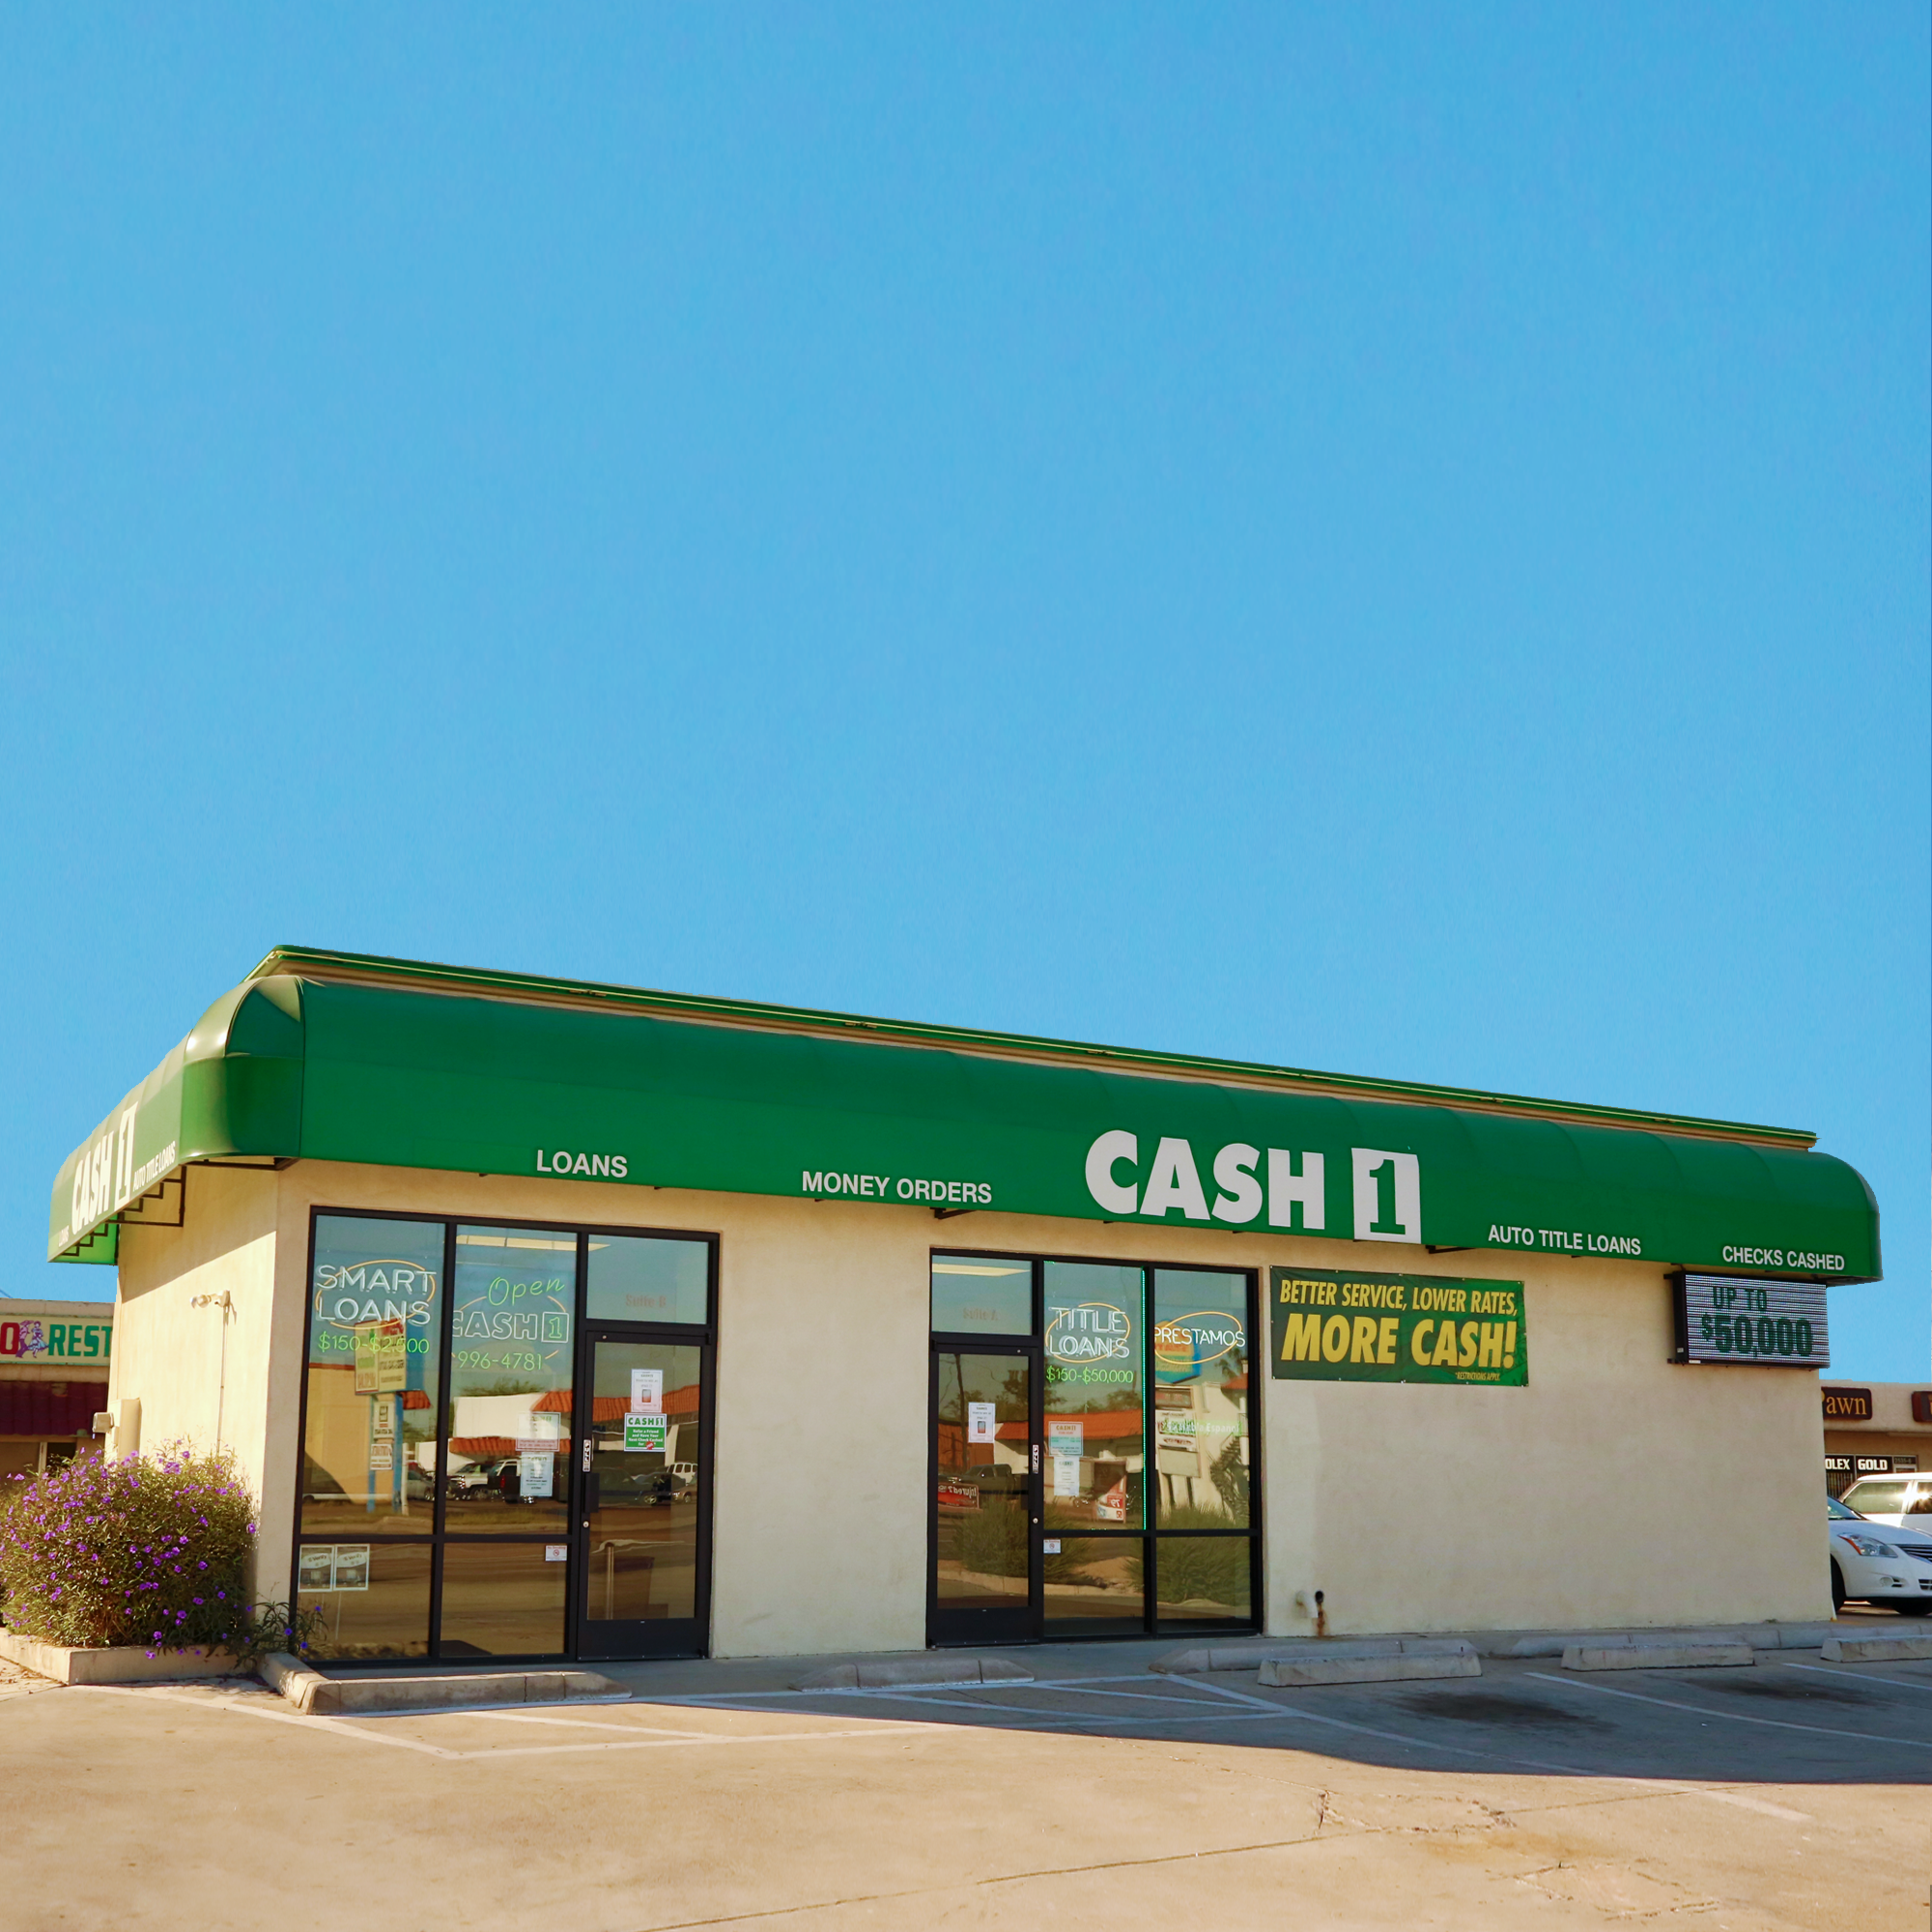 Cash for Cars in Grand Prairie, Texas - Sell Your Car - A+